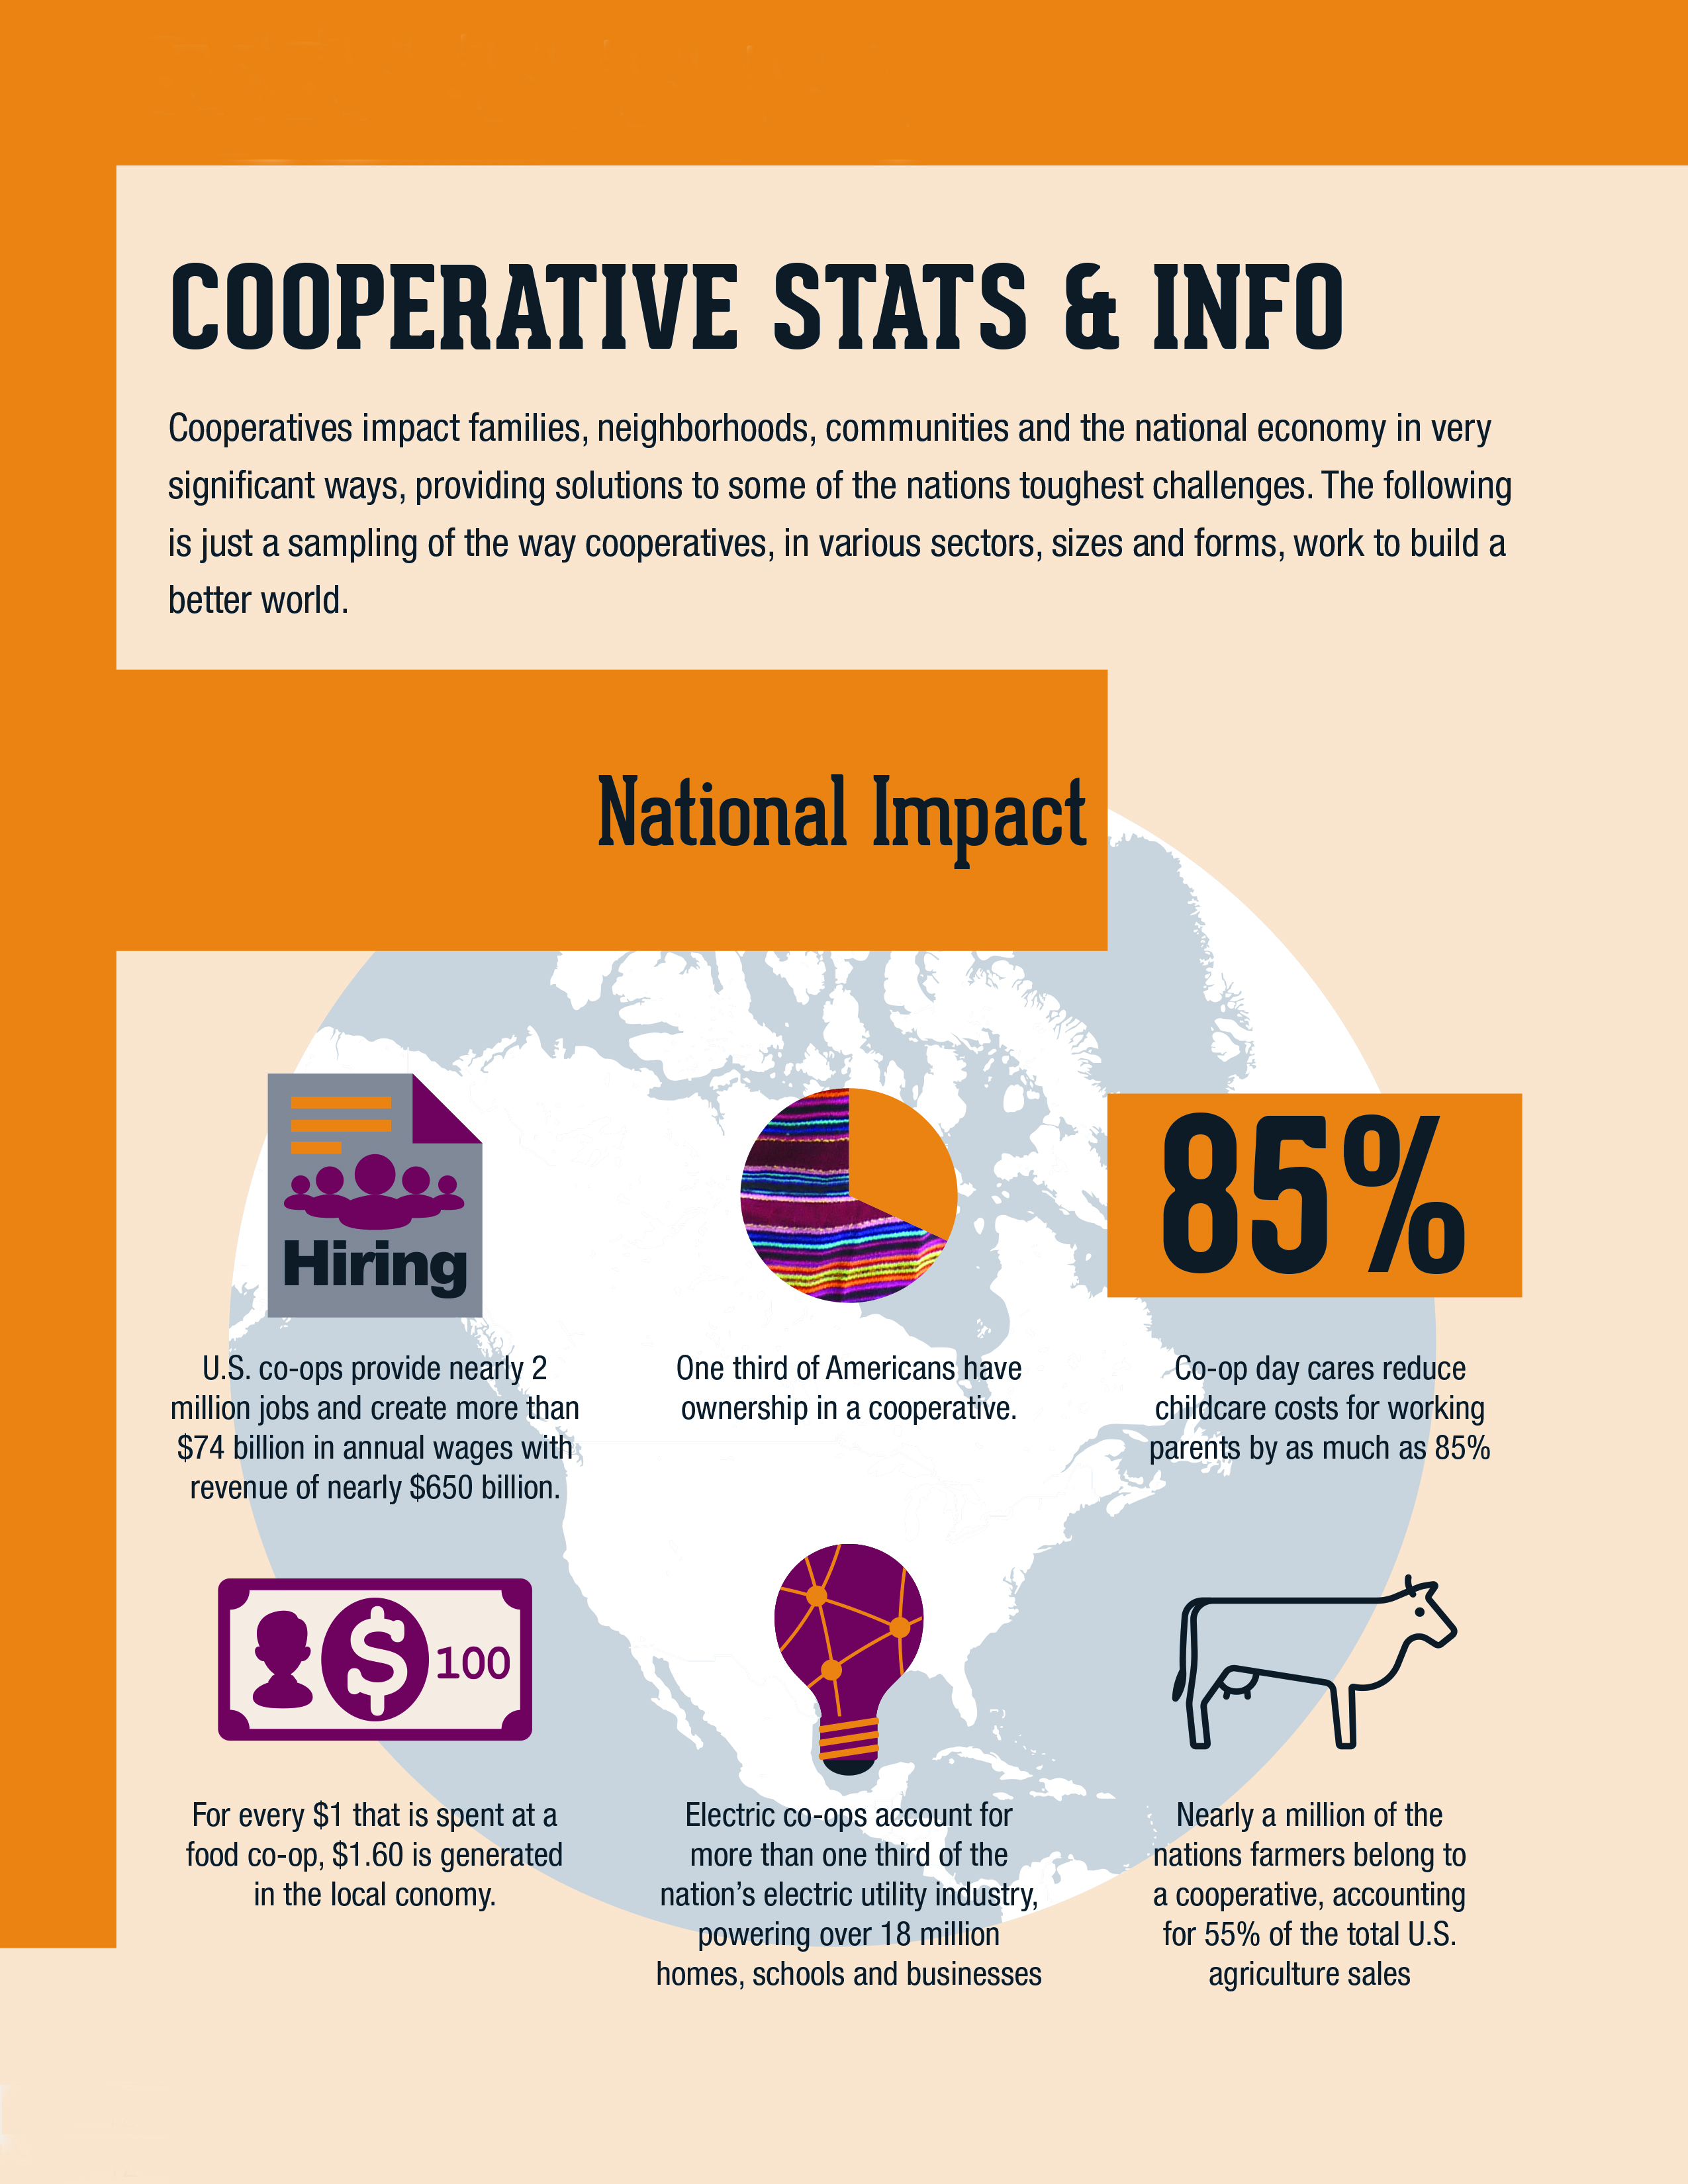 Statistics about cooperatives in general